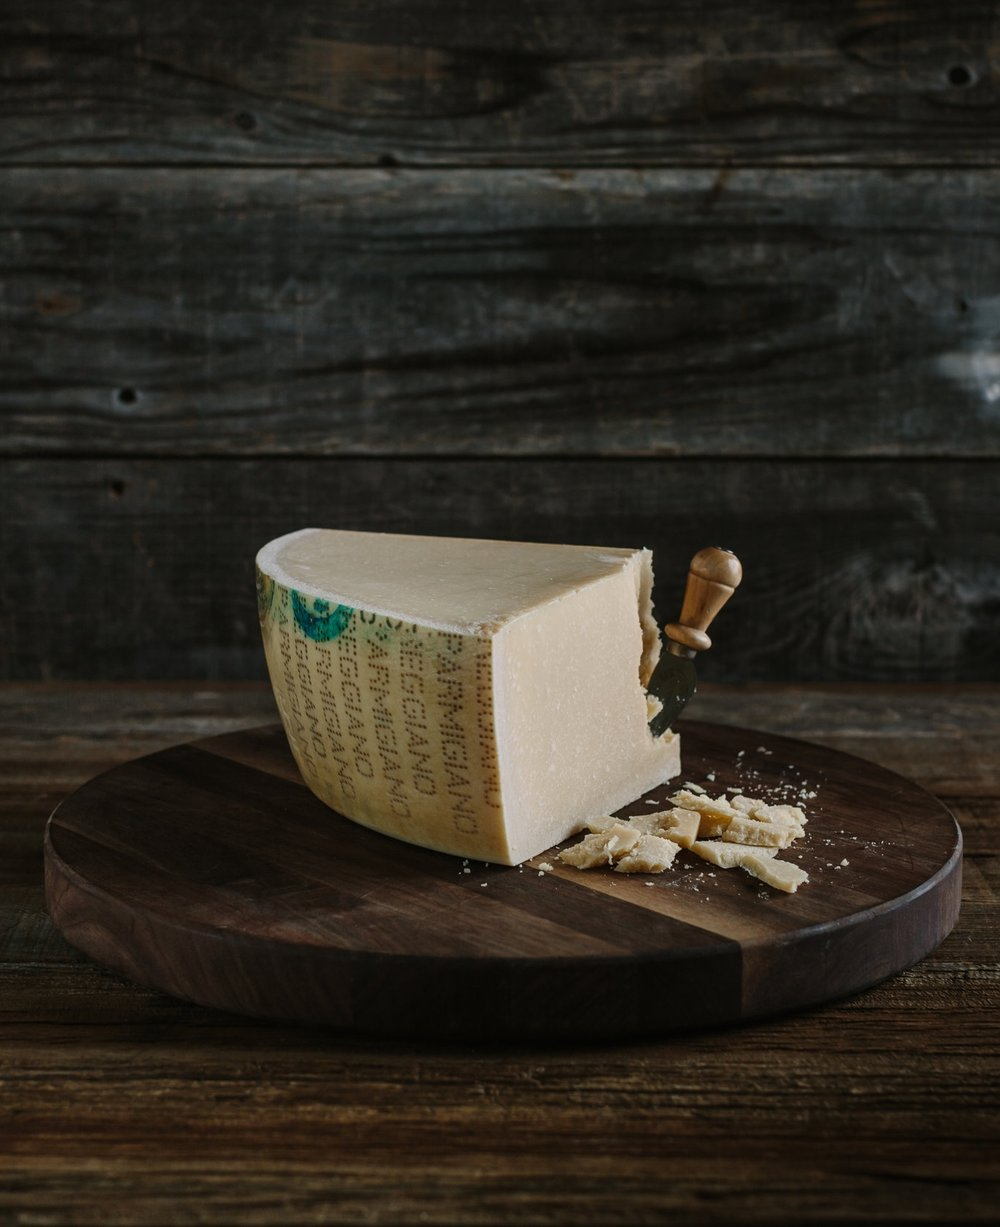 Cheesemongers know it's not true - People may have a sense that this is an interchangeable cheese, one wheel no better than another.But while Parmigiano Reggiano production is controlled by a strict PDO, there's nothing in the rules that says a maker can't try to do better.